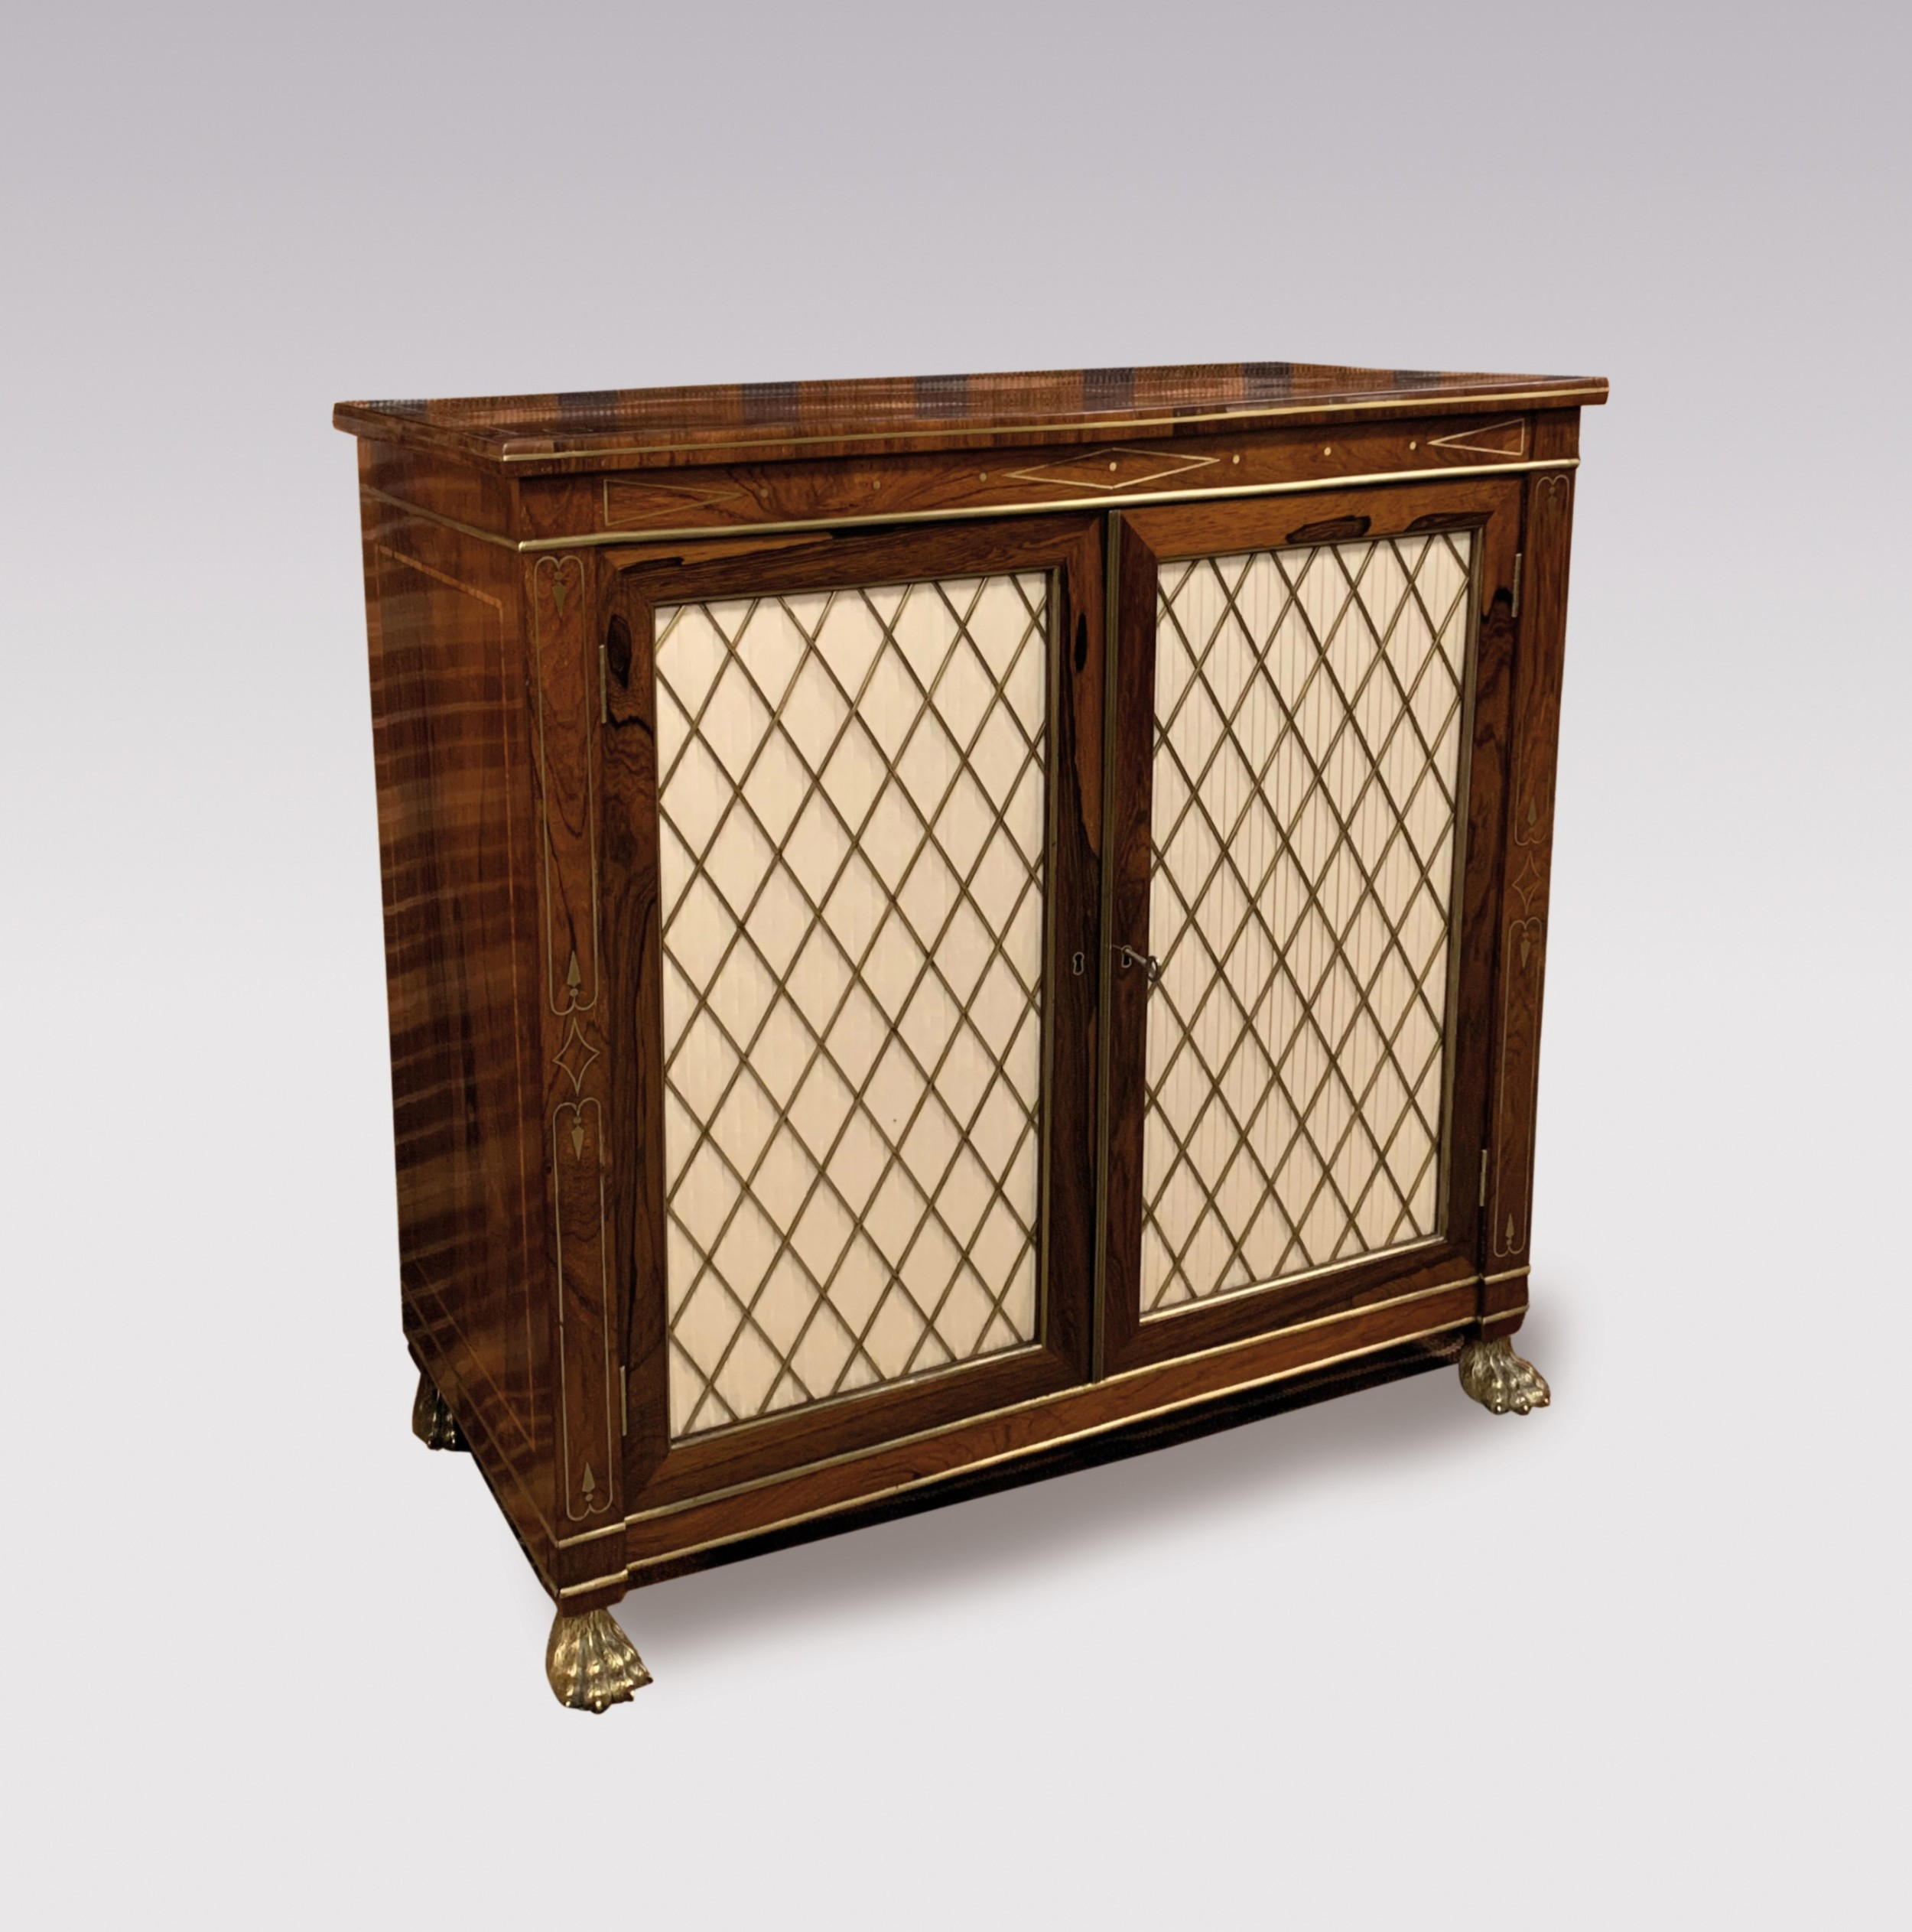 early 19th century regency period rosewood and brass inlaid two door cabinet